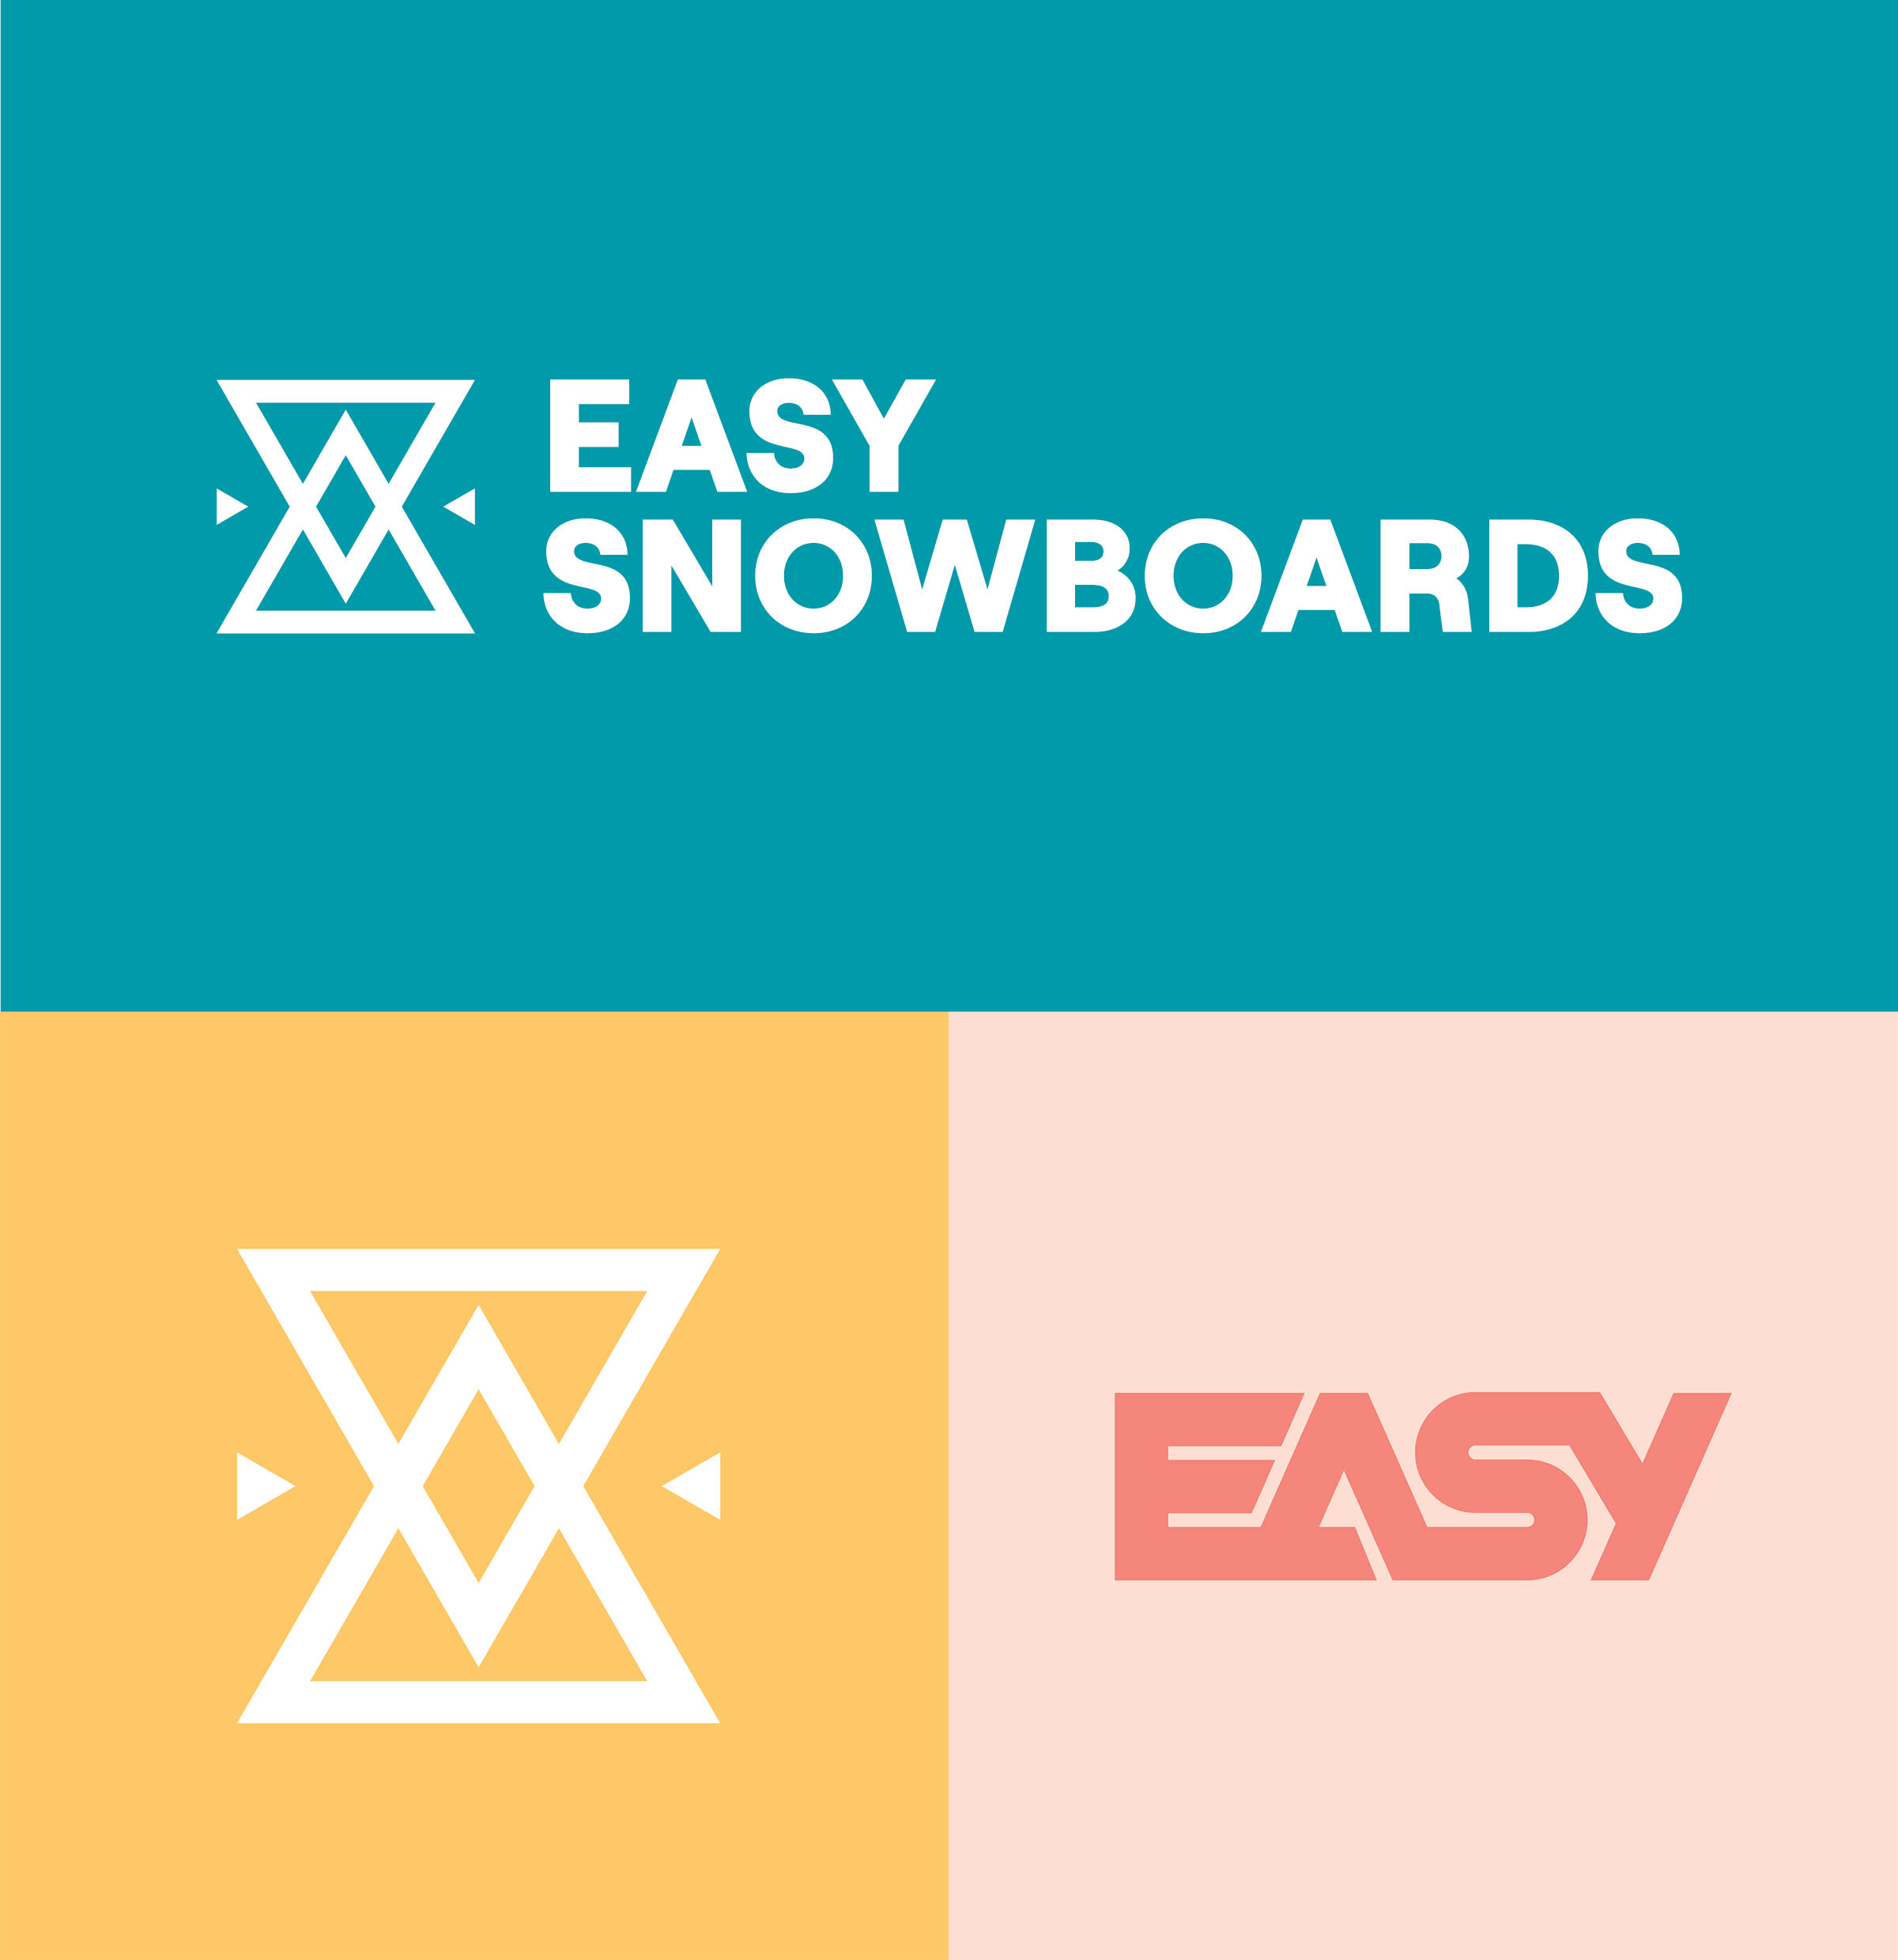 easy-snowboards-charte